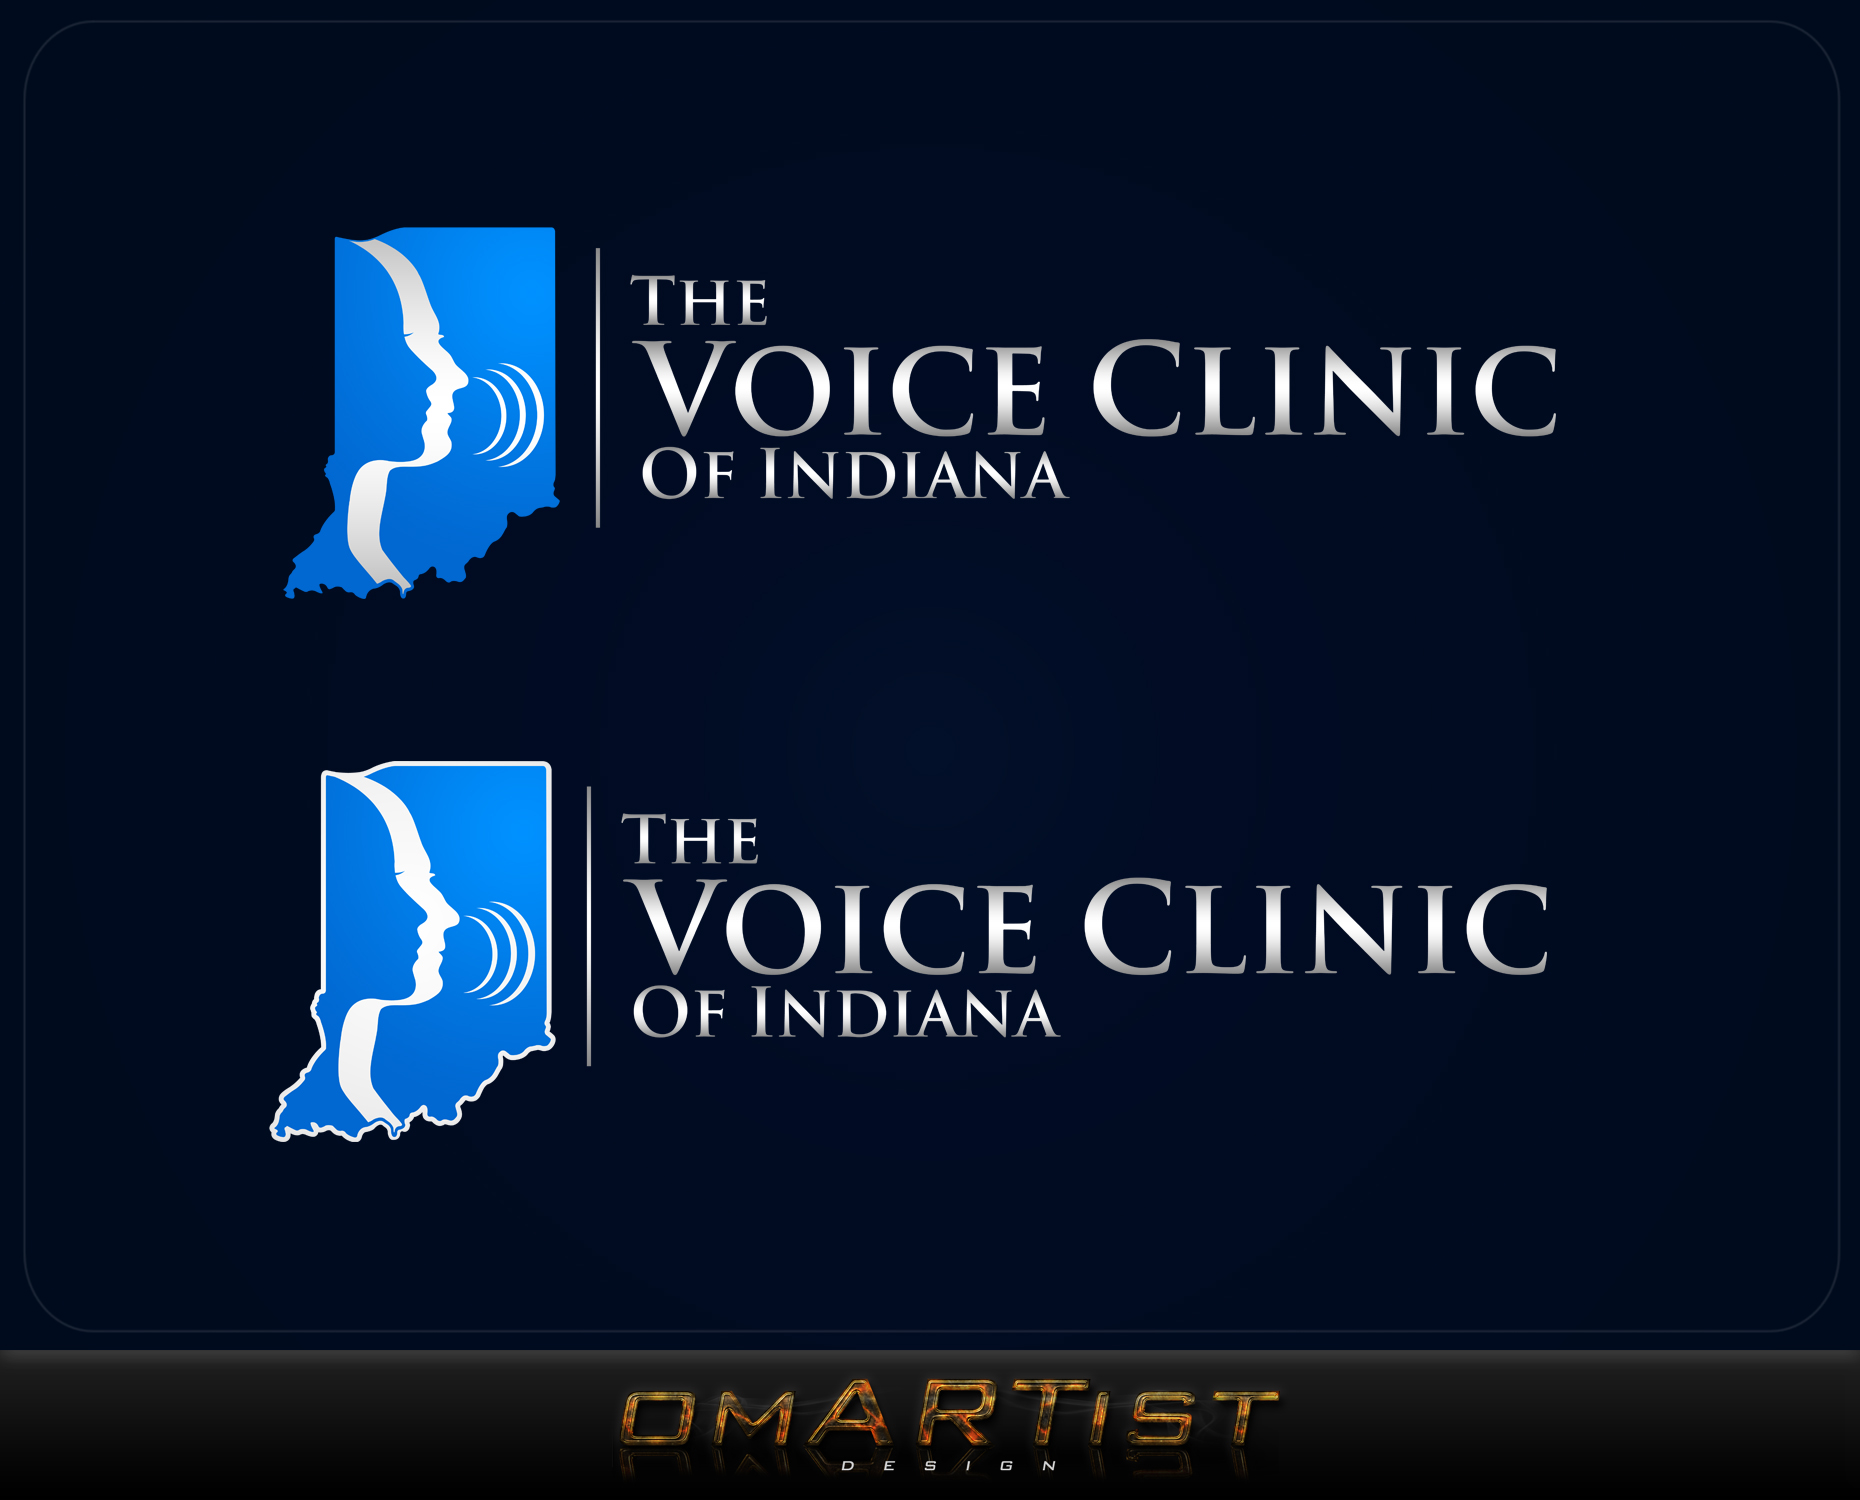 Logo Design by omARTist - Entry No. 38 in the Logo Design Contest Logo Design for The Voice Clinic of Indiana.